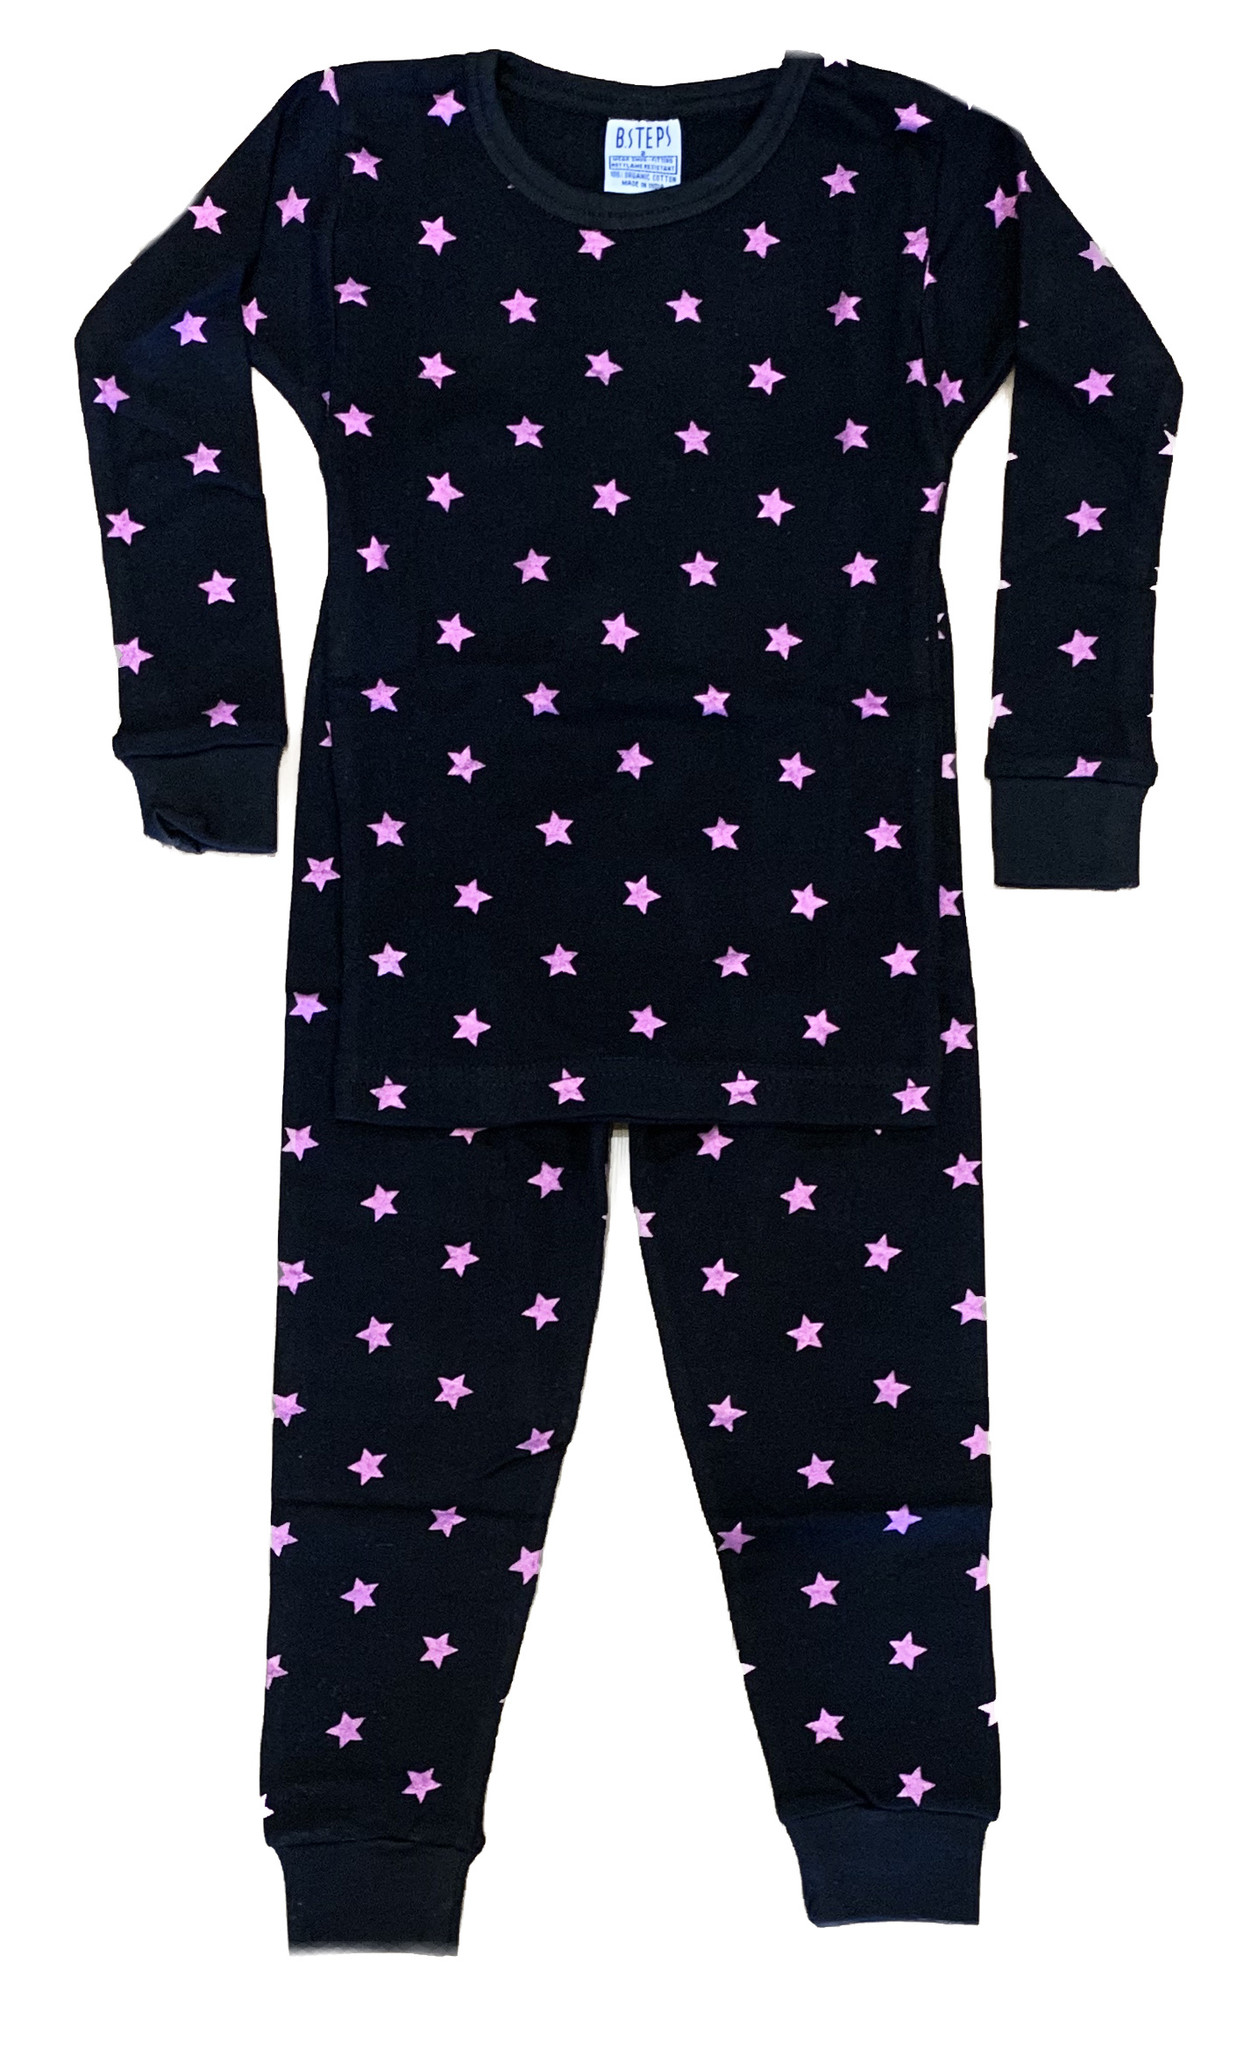 Baby Steps Black Foil Stars PJ Set